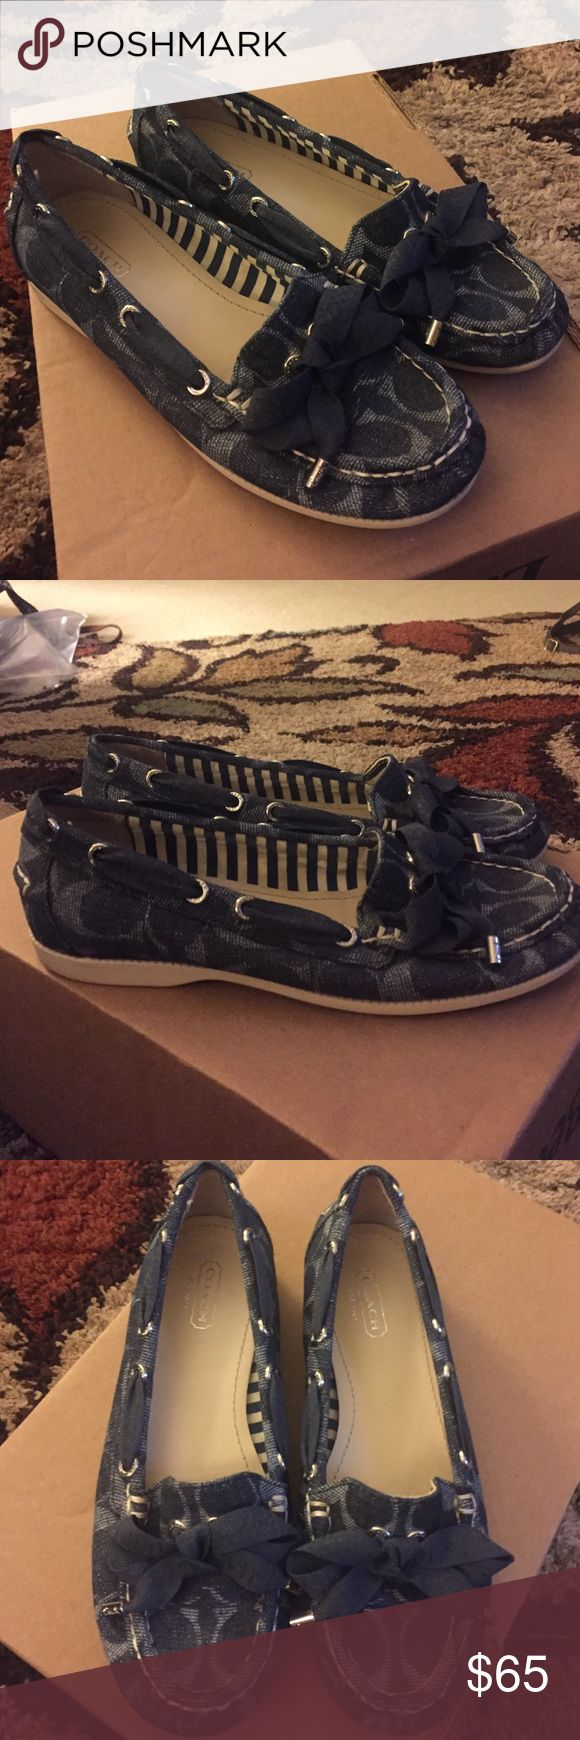 Coach boat shoes Coach blue boat shoes, size 6.5, worn once great condition. Coach Shoes Flats & Loafers